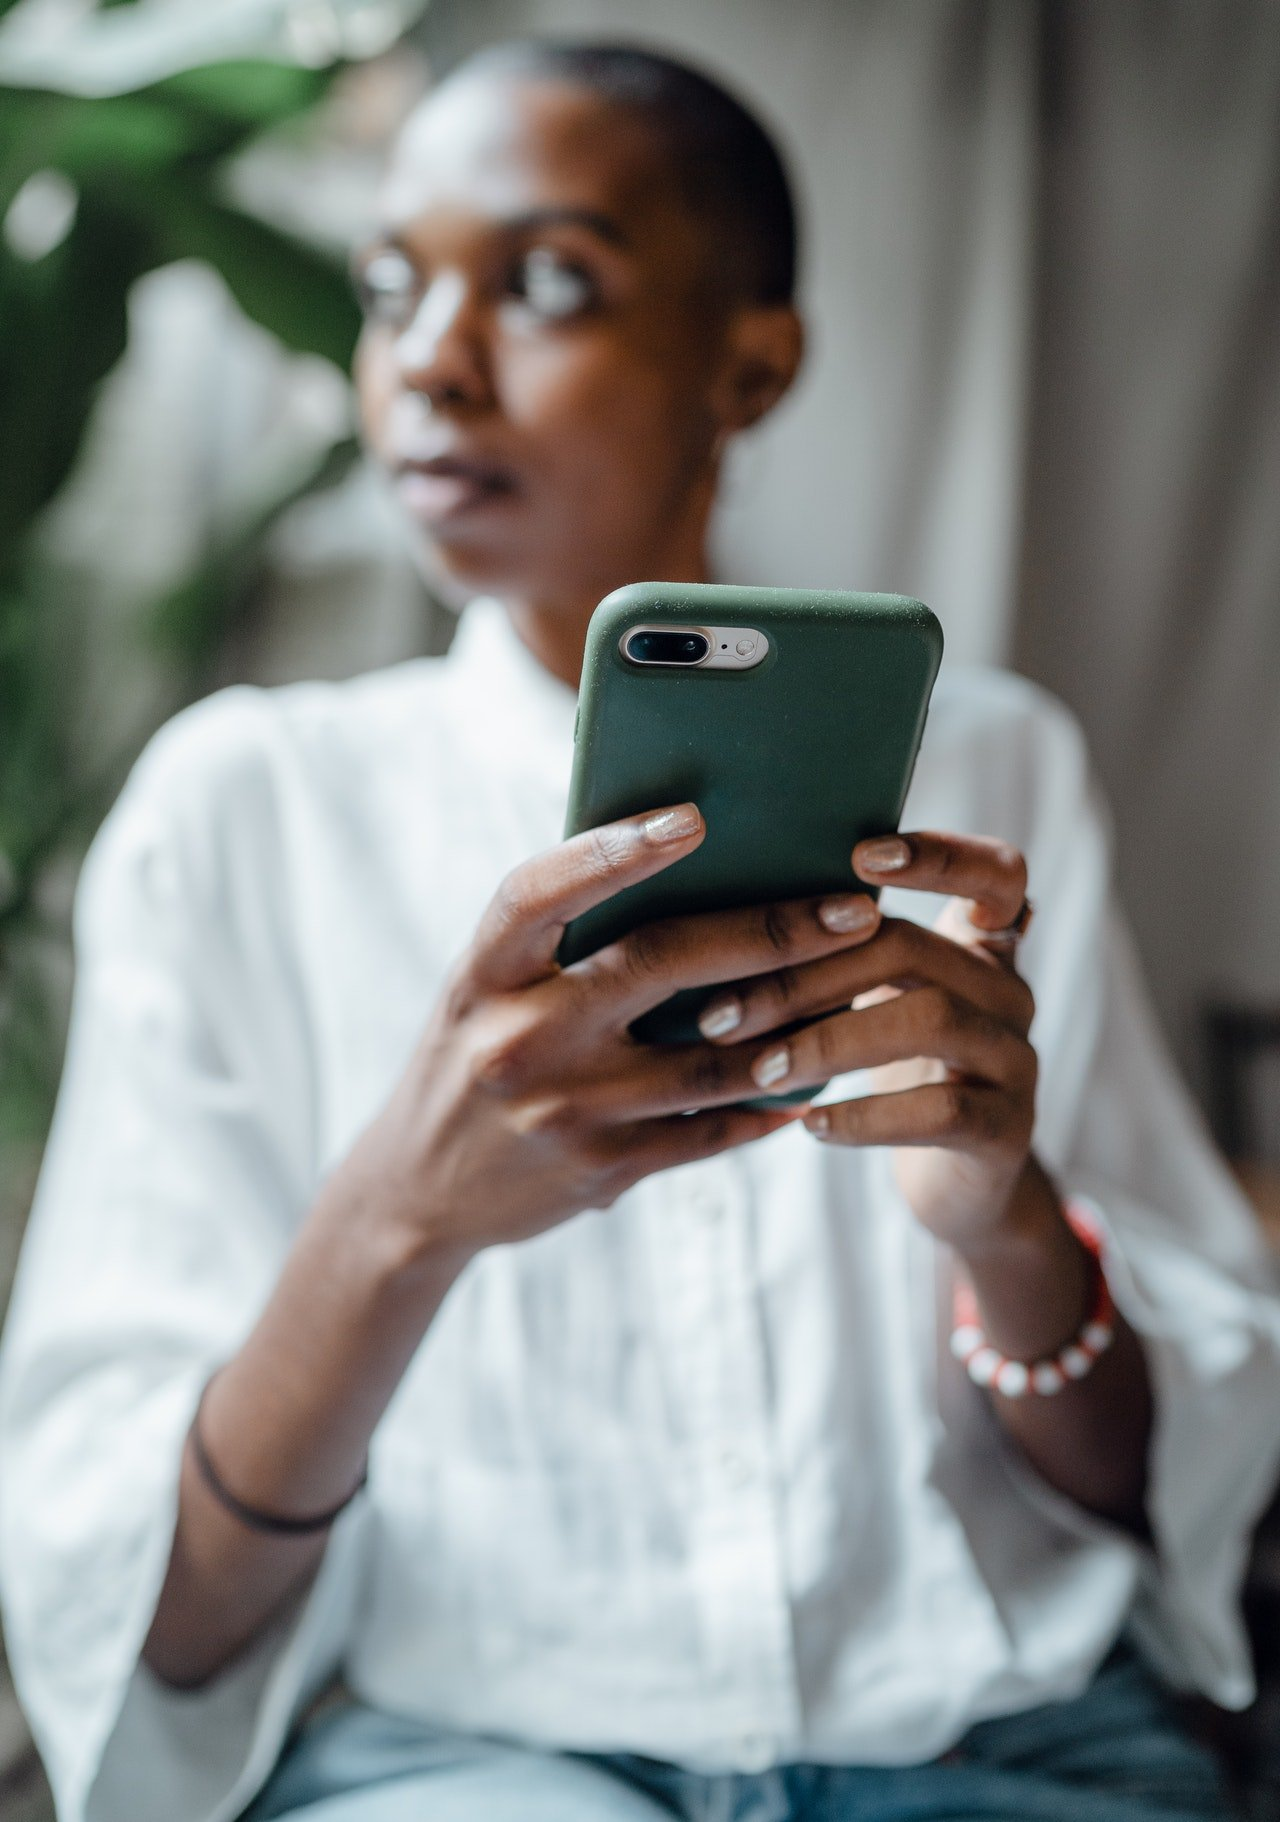 Woman using her phone and looking away   Source: Pexels